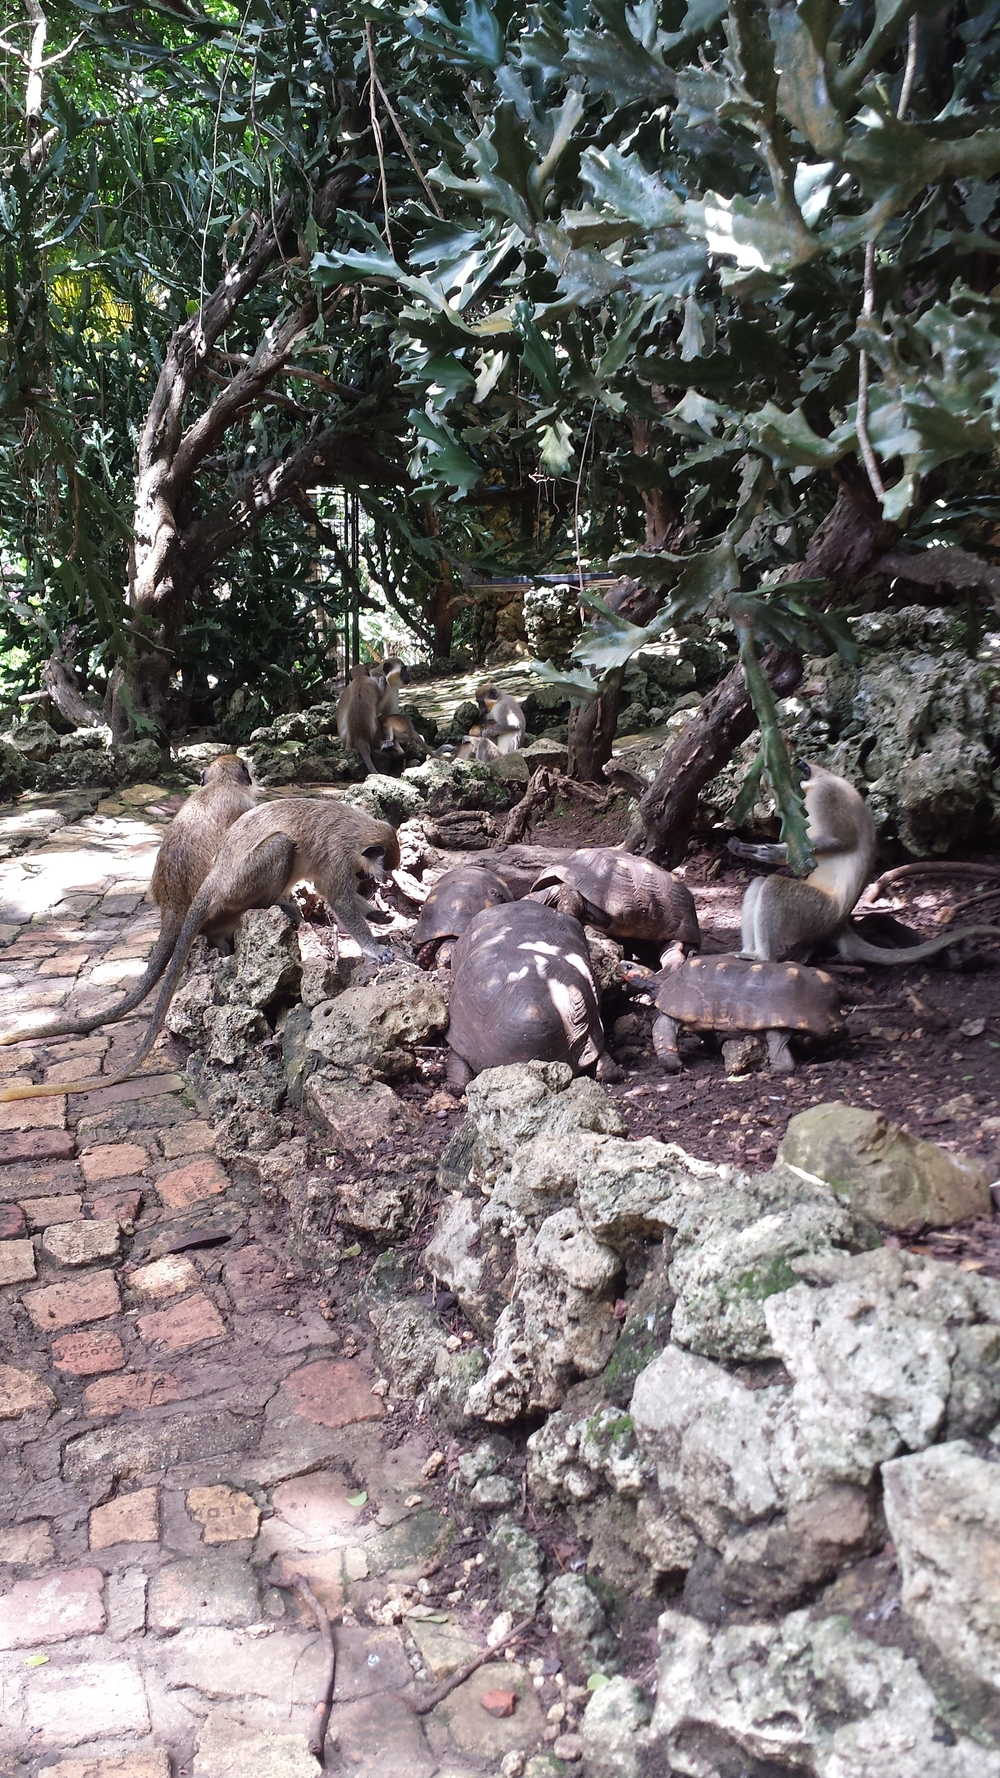 The monkeys and tortoises eat from the same area - lessons for humans maybe?